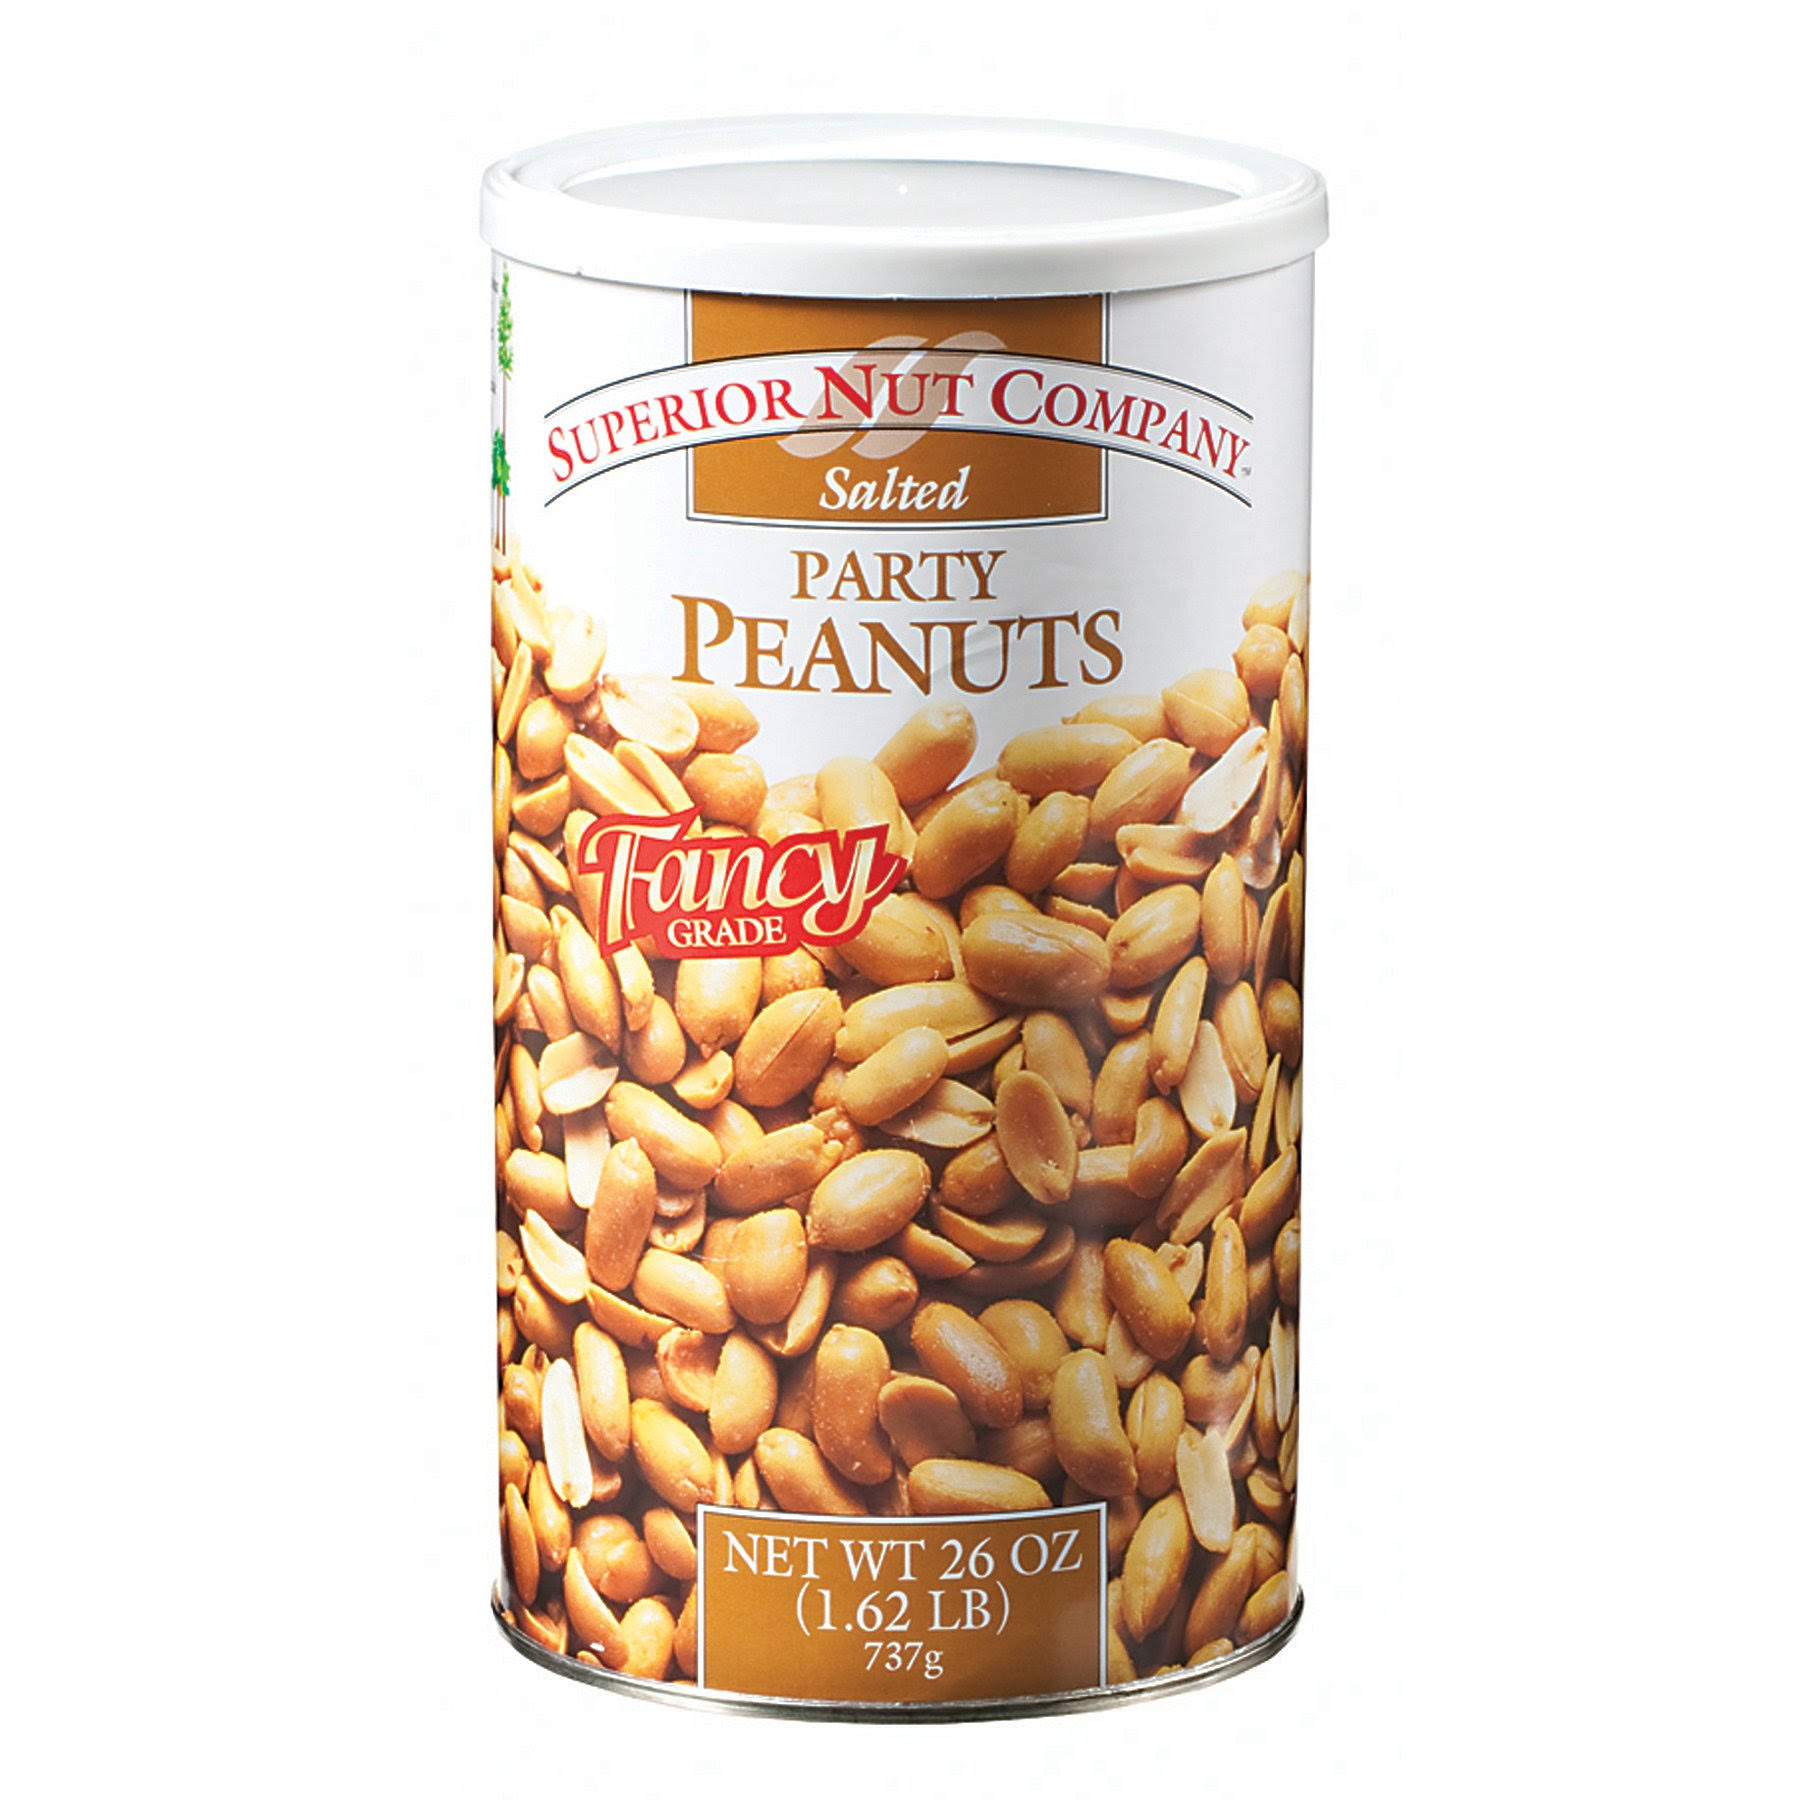 Superior Nut Company Party Peanuts, 26 oz